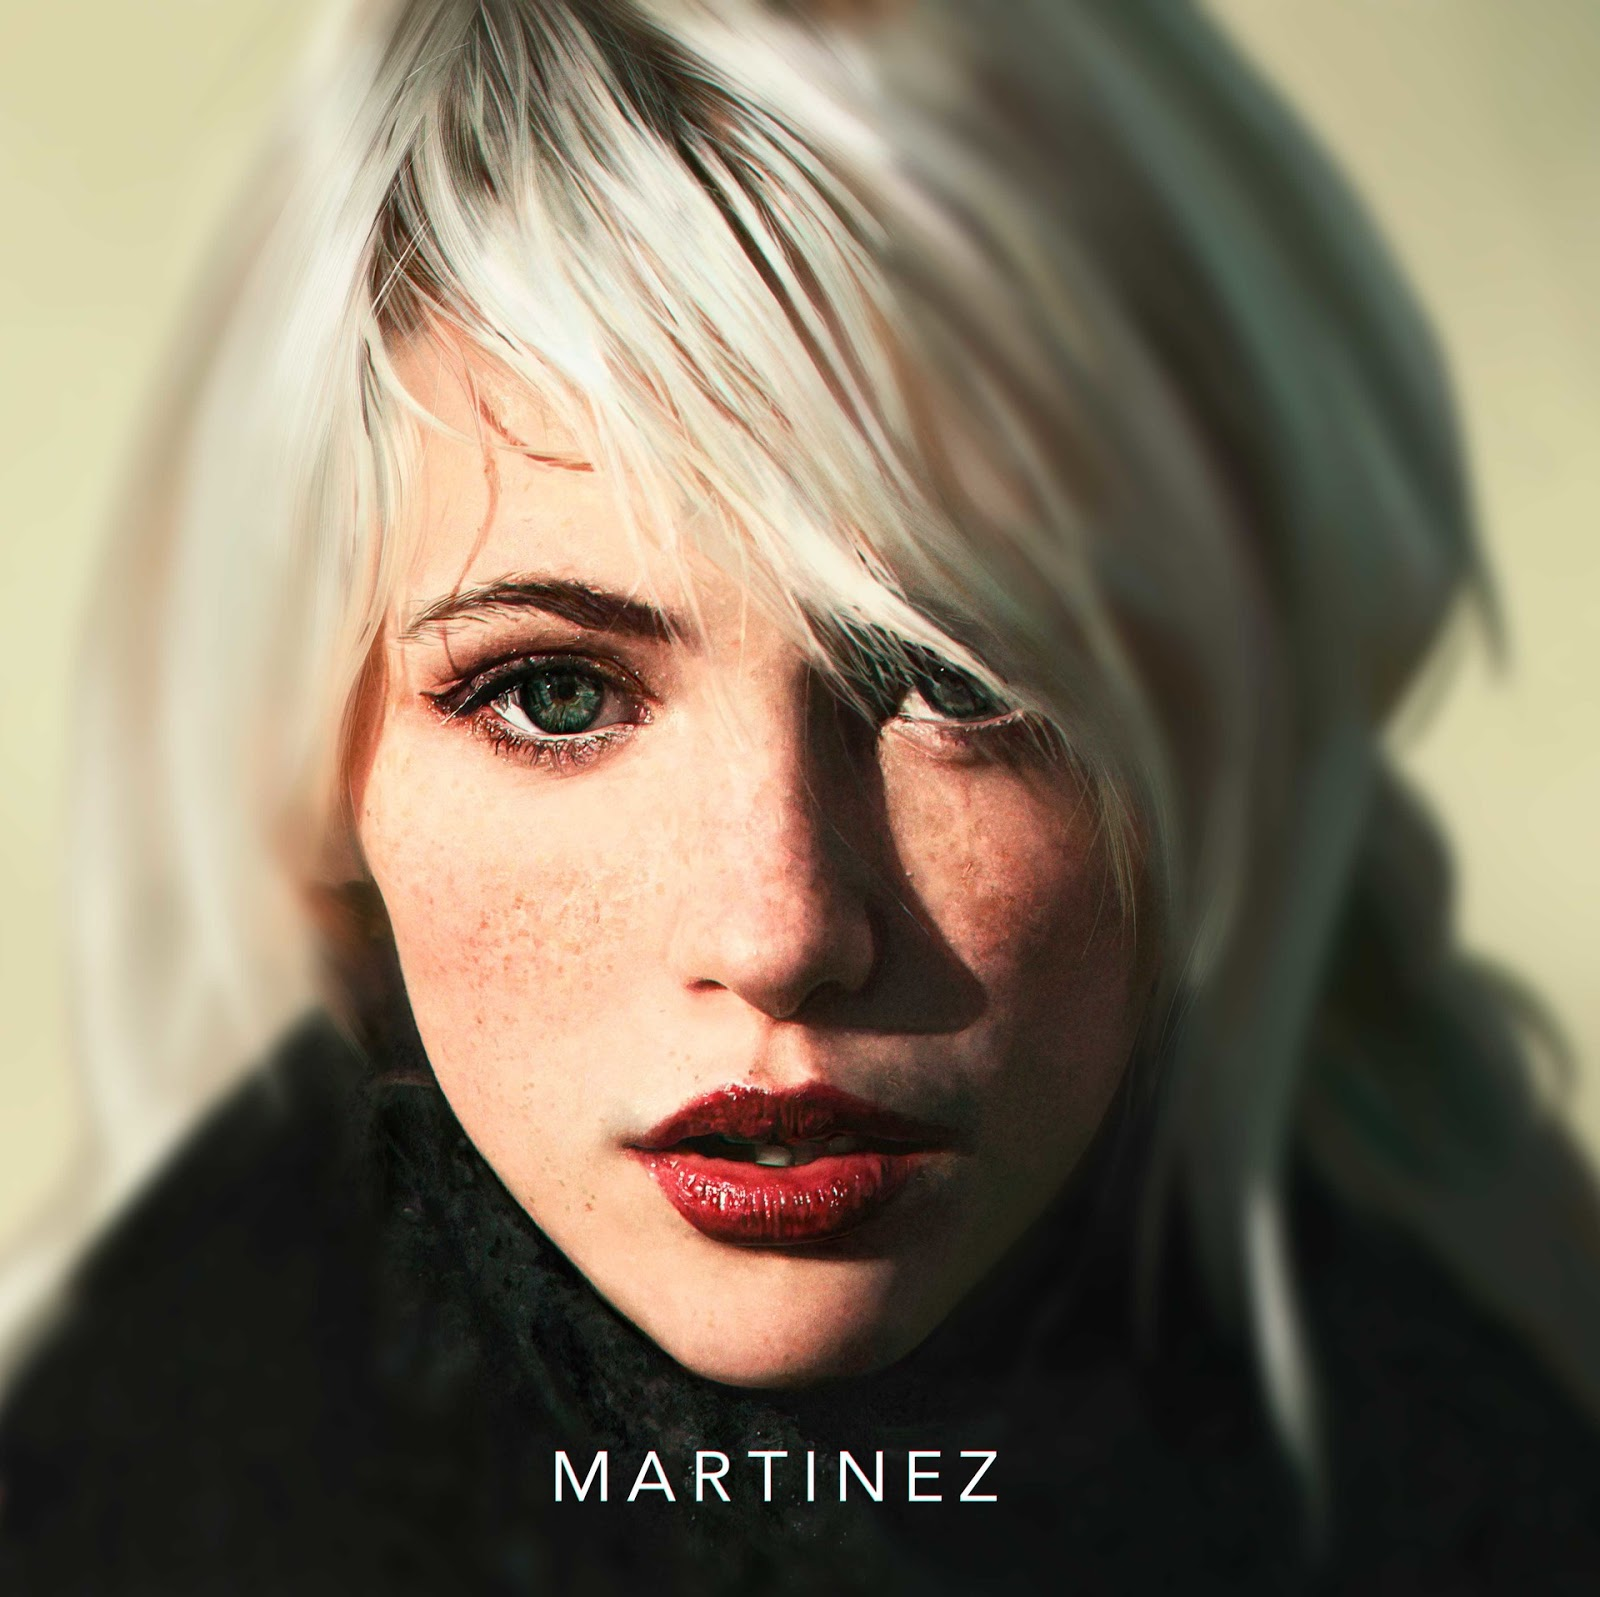 Digital Paintings/ Illustrations by Ricky Martinez